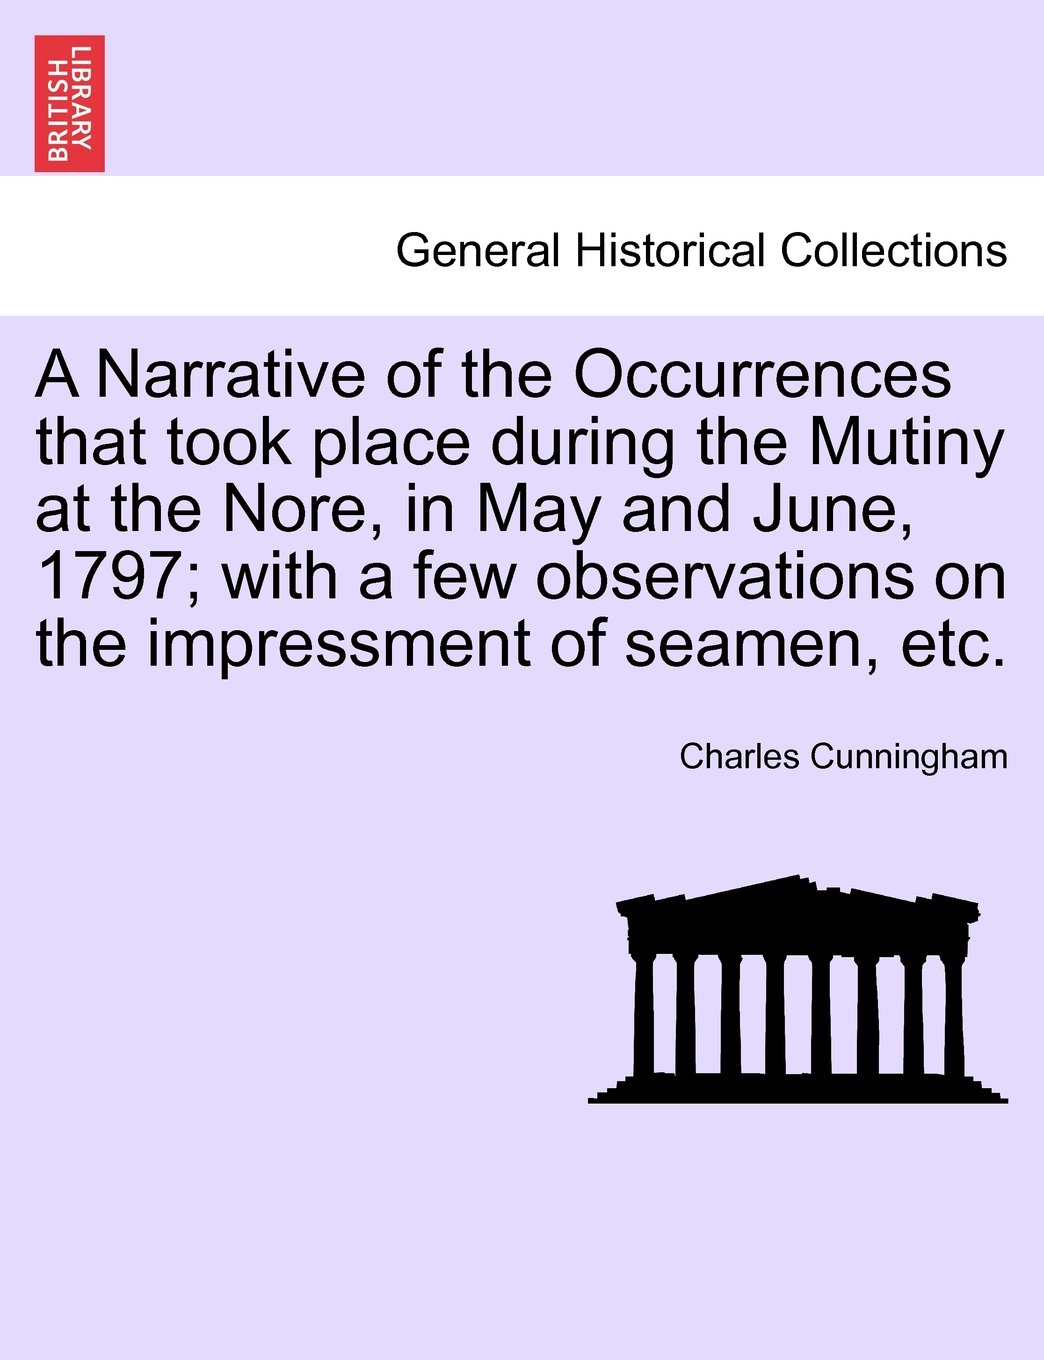 Read Online A Narrative of the Occurrences that took place during the Mutiny at the Nore, in May and June, 1797; with a few observations on the impressment of seamen, etc. PDF